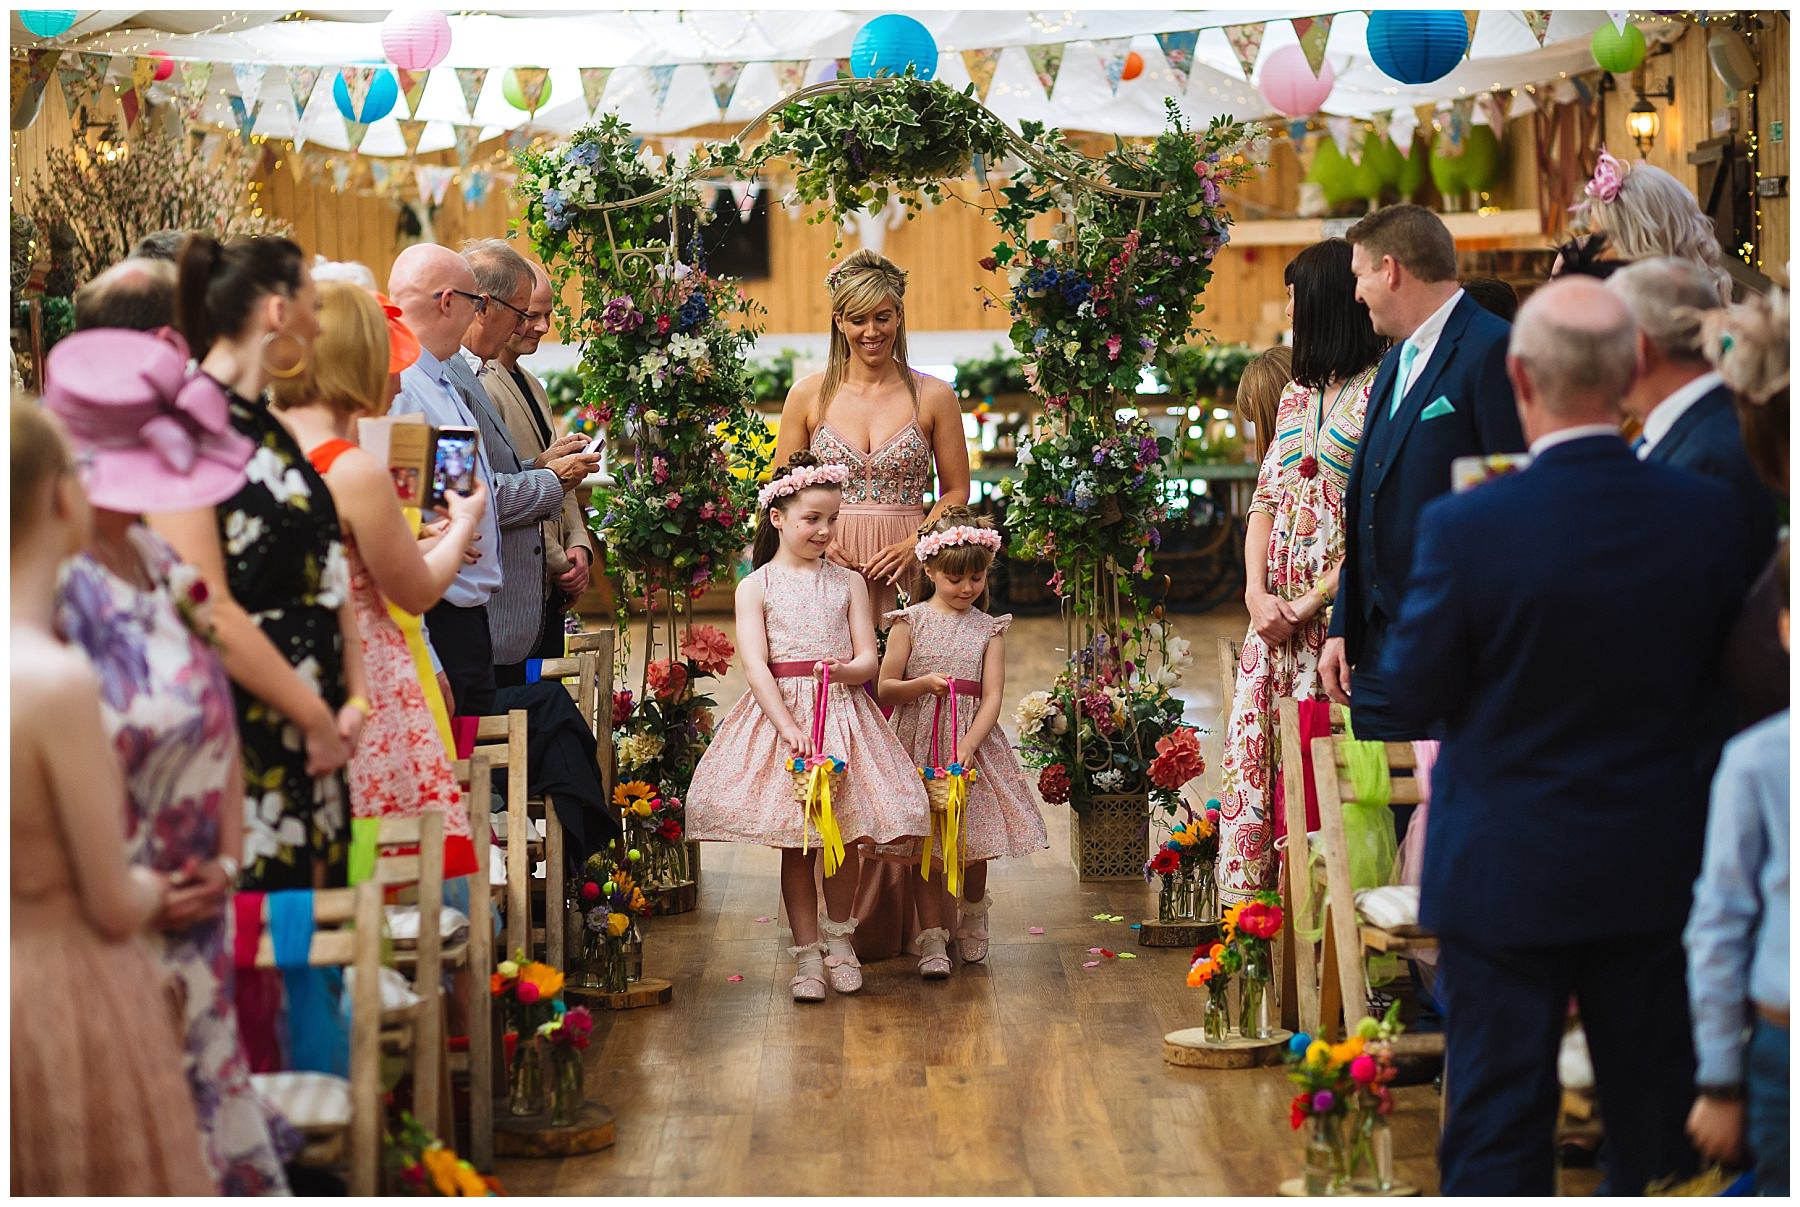 flowergirls and bridesmaid arrive at the wellbeing farm